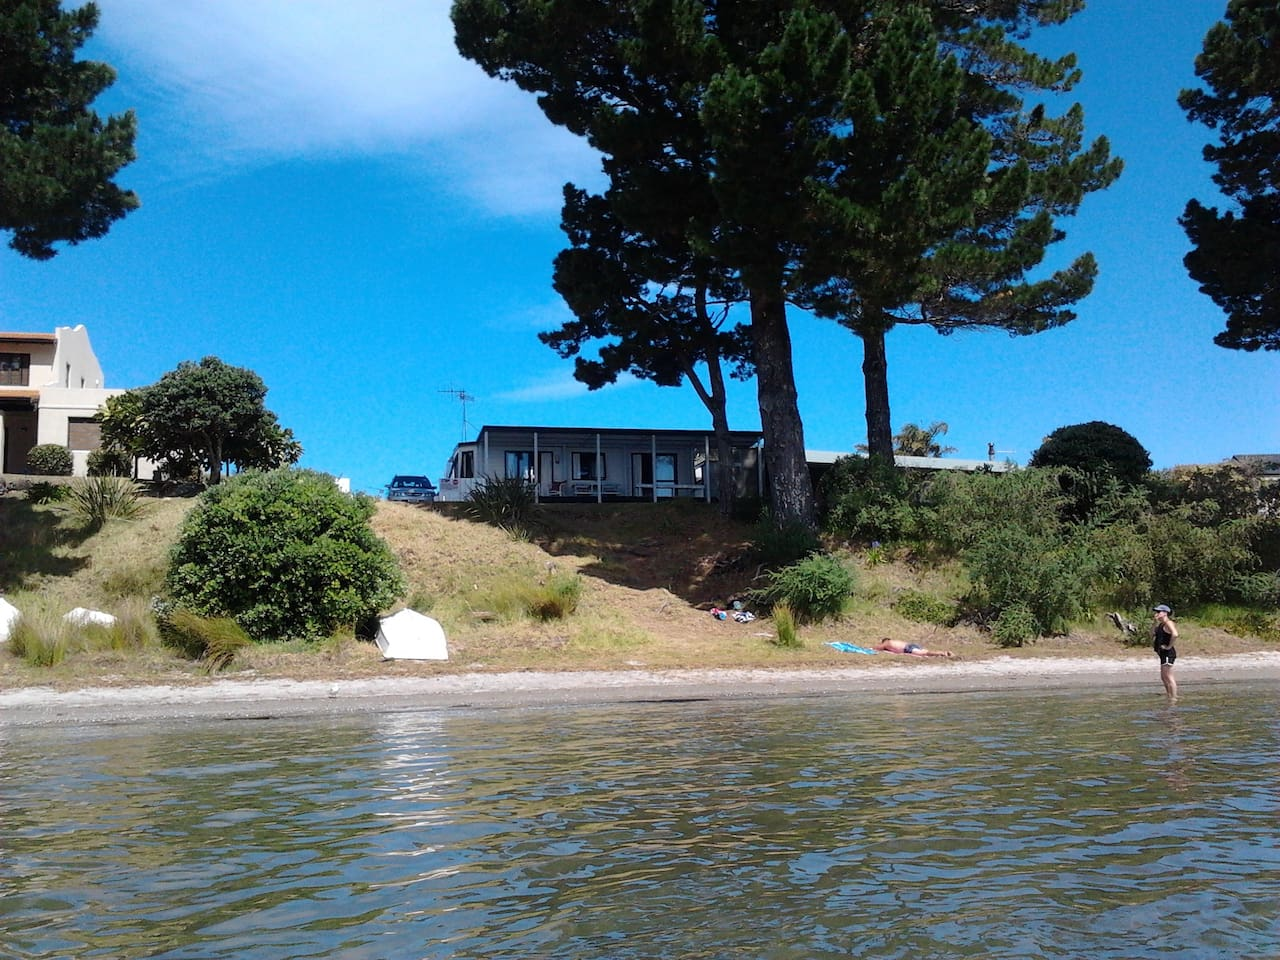 As close as you can get to the estuary at Pauanui